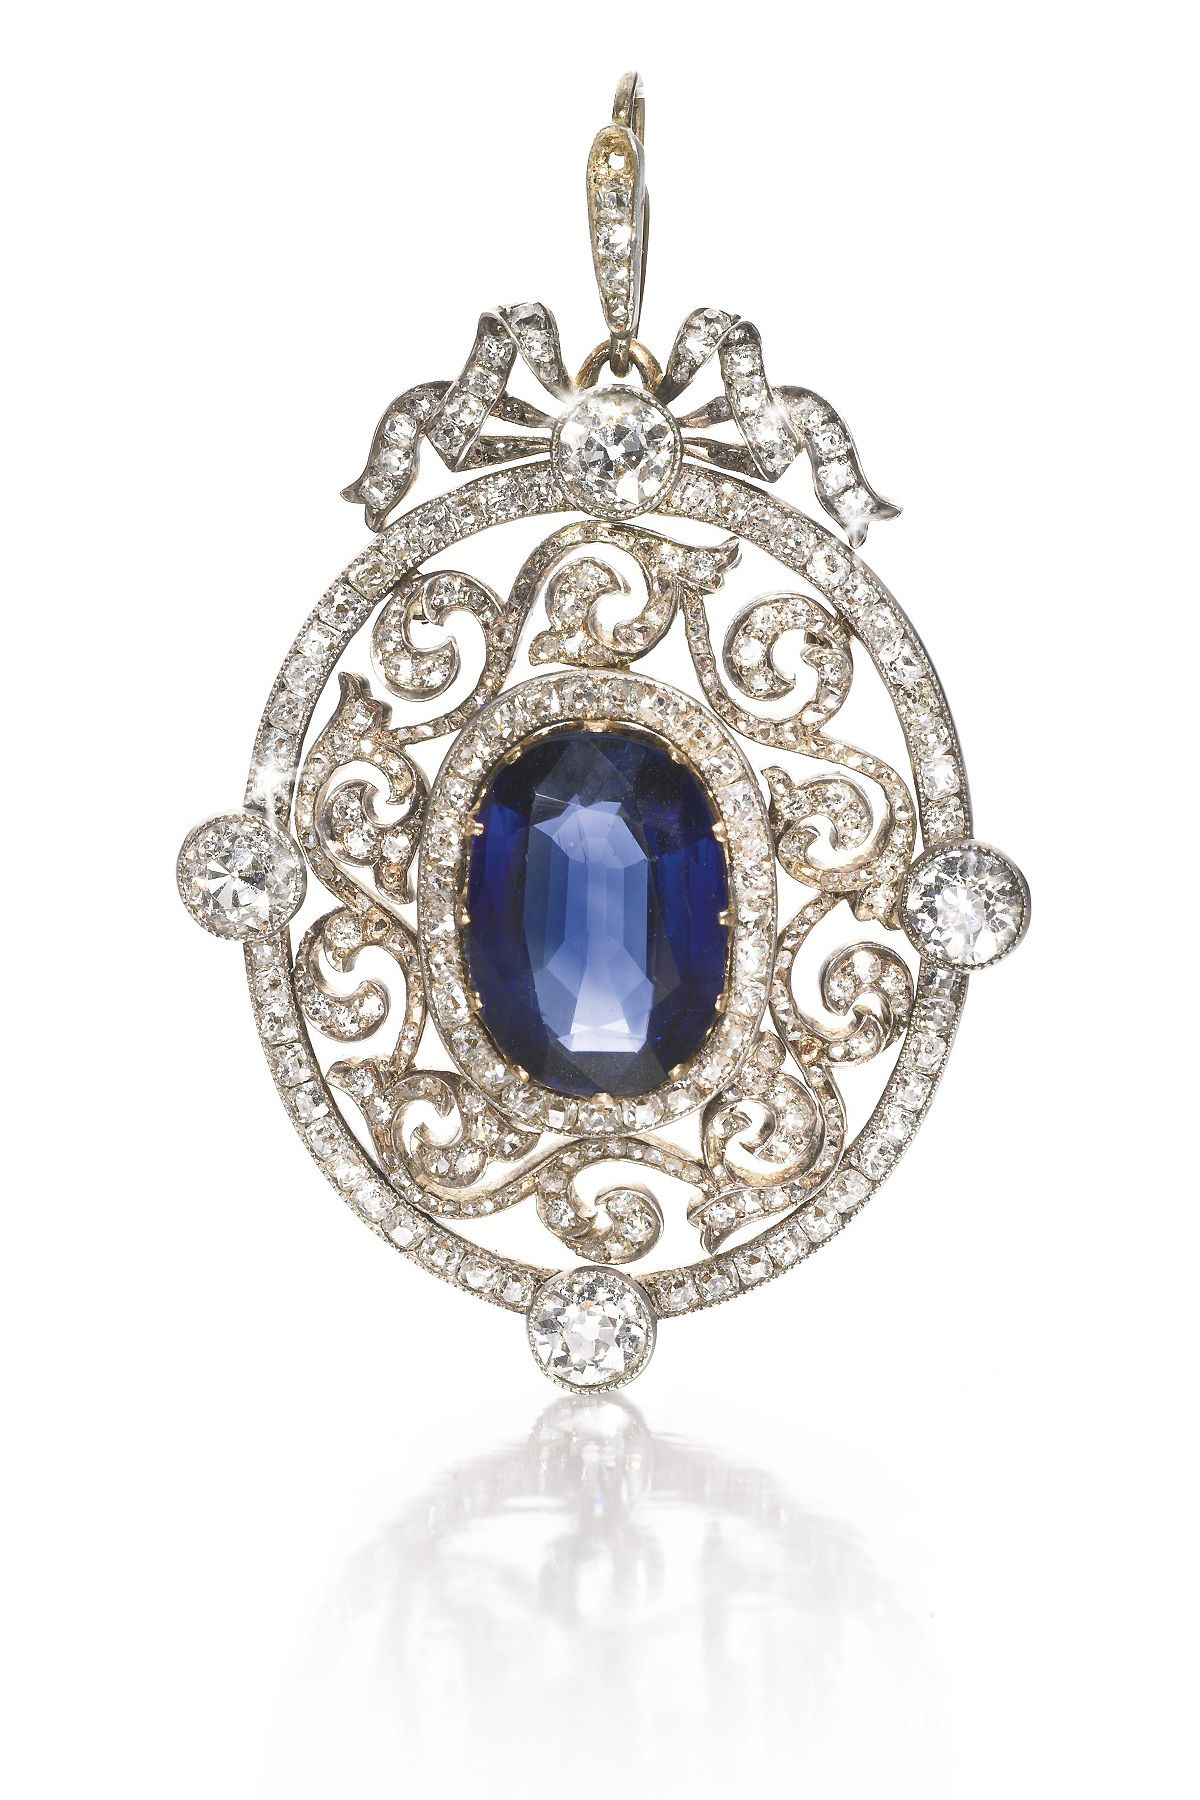 A Fabergé jewelled gold pendant, Moscow, 1899-1908. the oval sapphire claw-set within an openwork rose-cut diamond-set scroll frame and four large circular-cut diamonds, ribbon surmount, struck KF in Cyrillic, 56 standard, scratched inventory number 316?38 height including suspension loop 5cm, 2in.